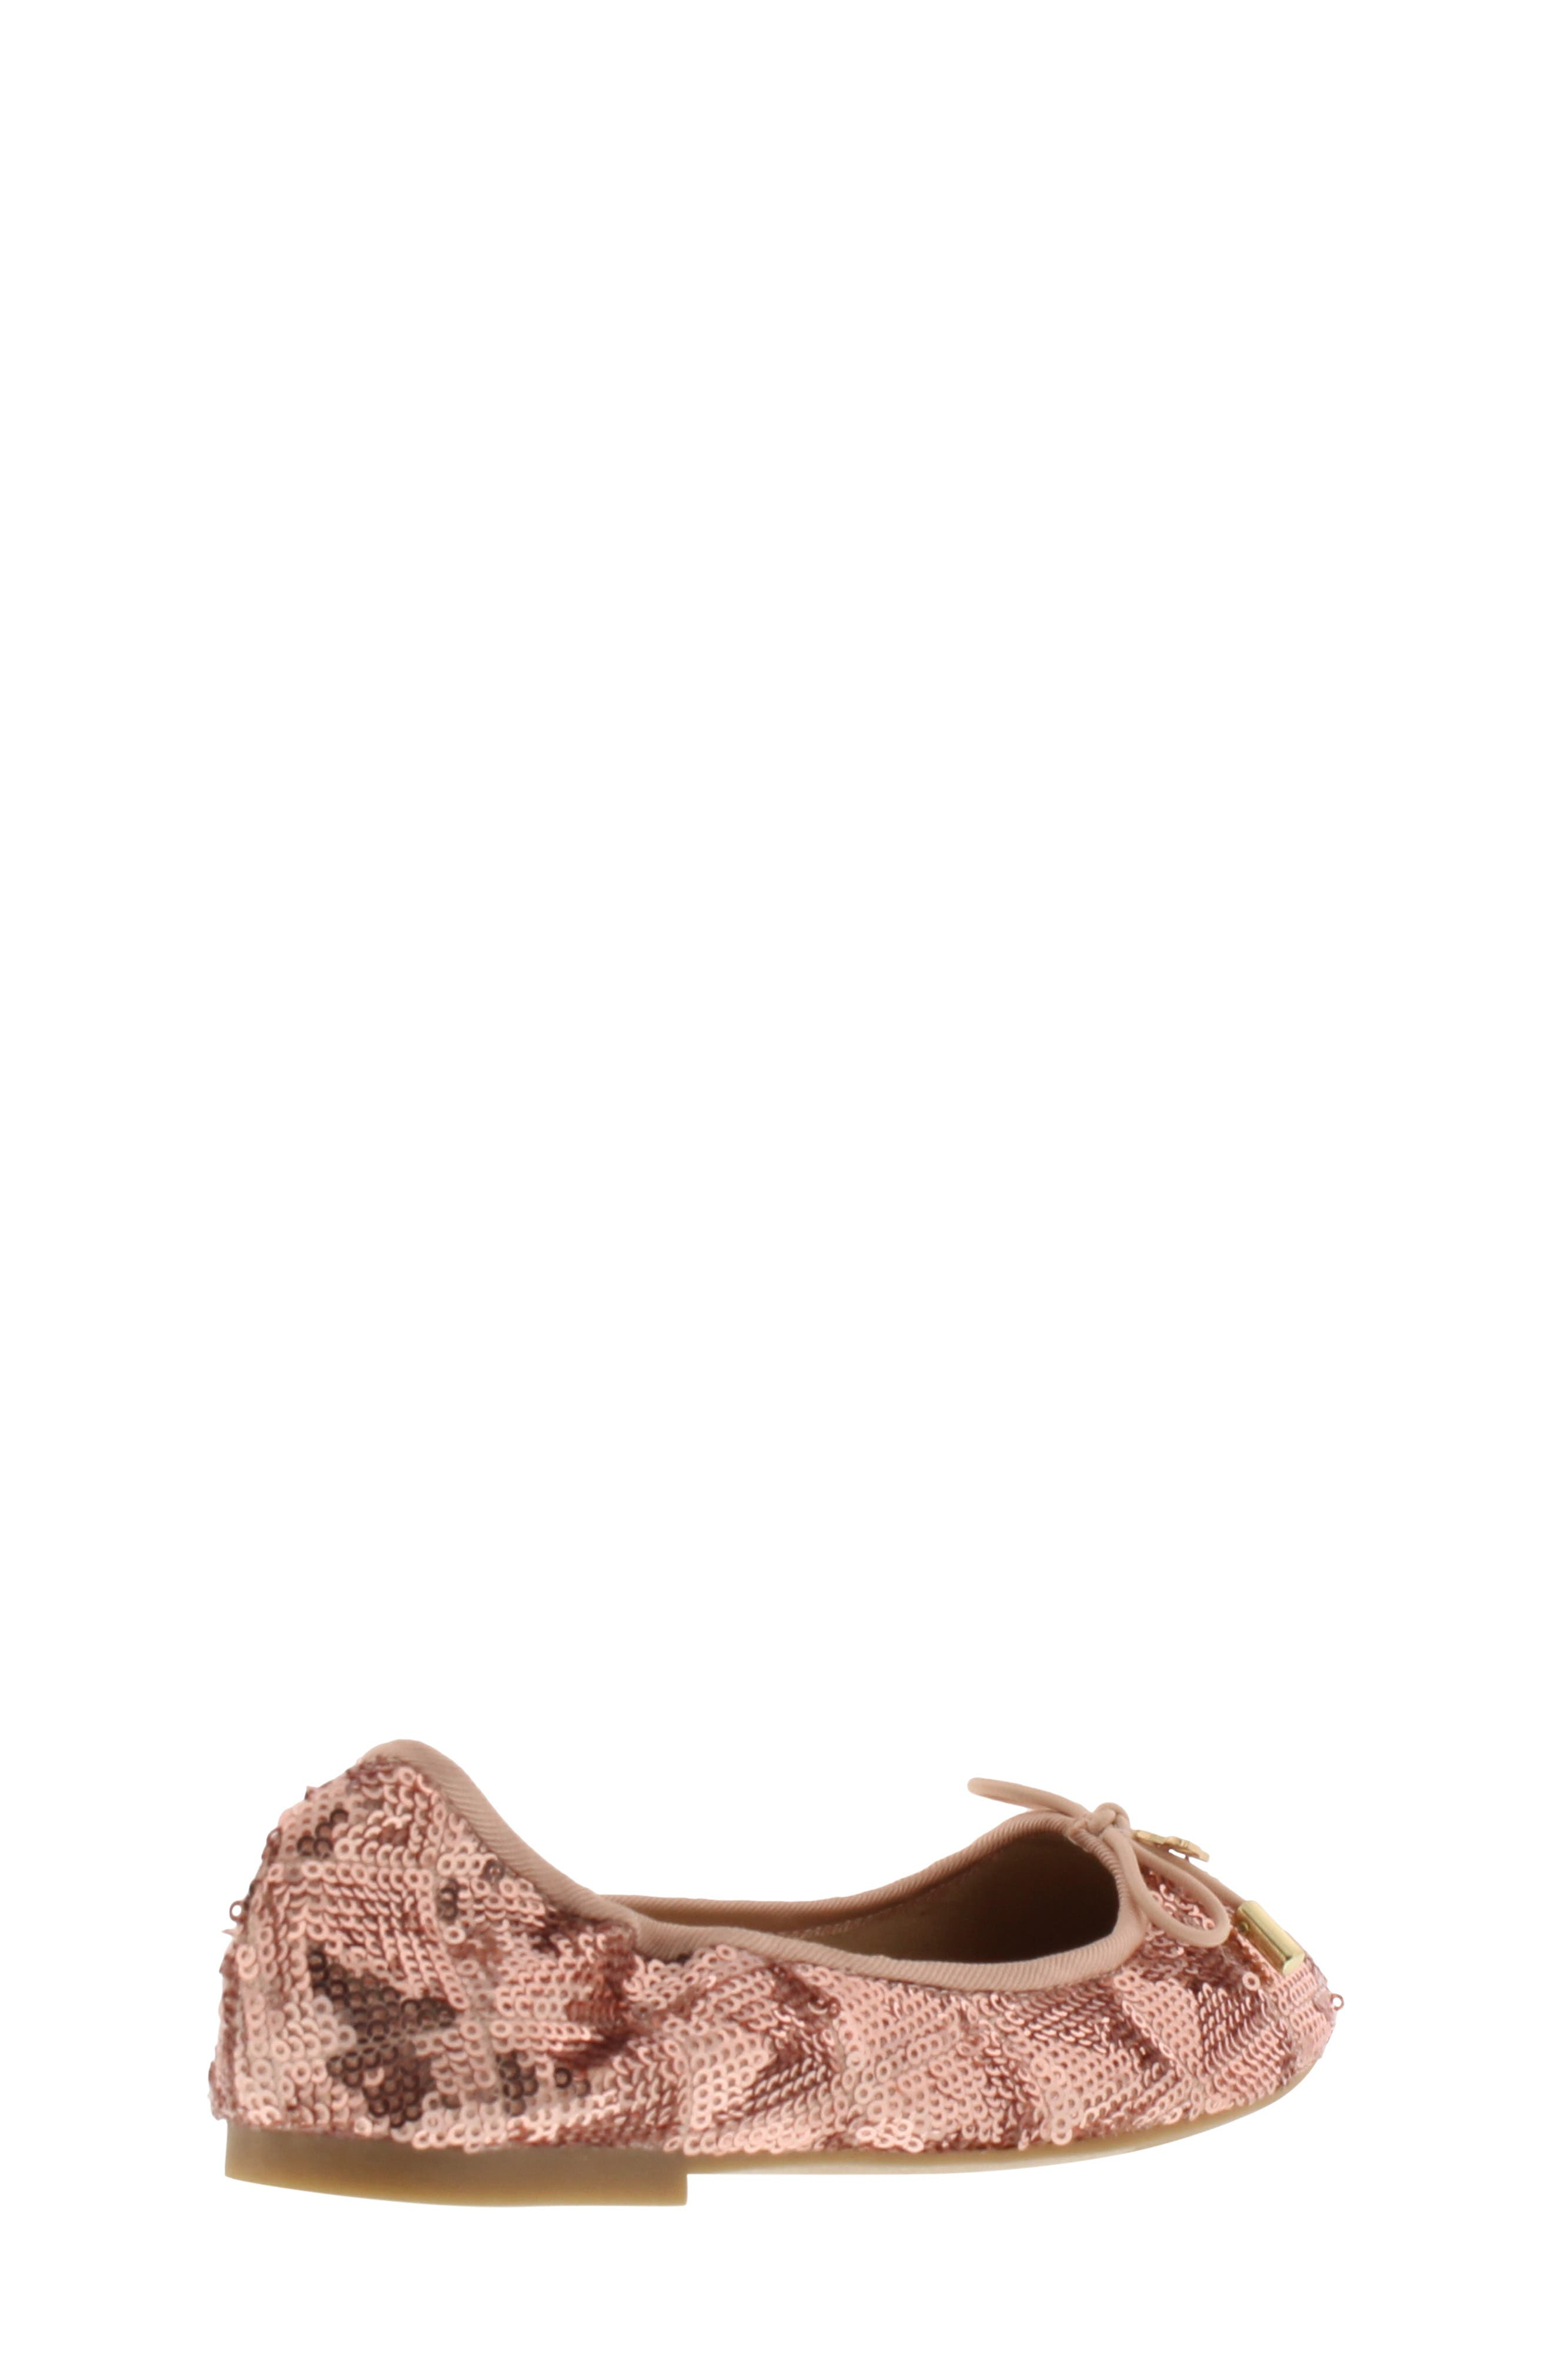 Felicia Sequin Ballet Flat,                             Alternate thumbnail 2, color,                             ROSE GOLD